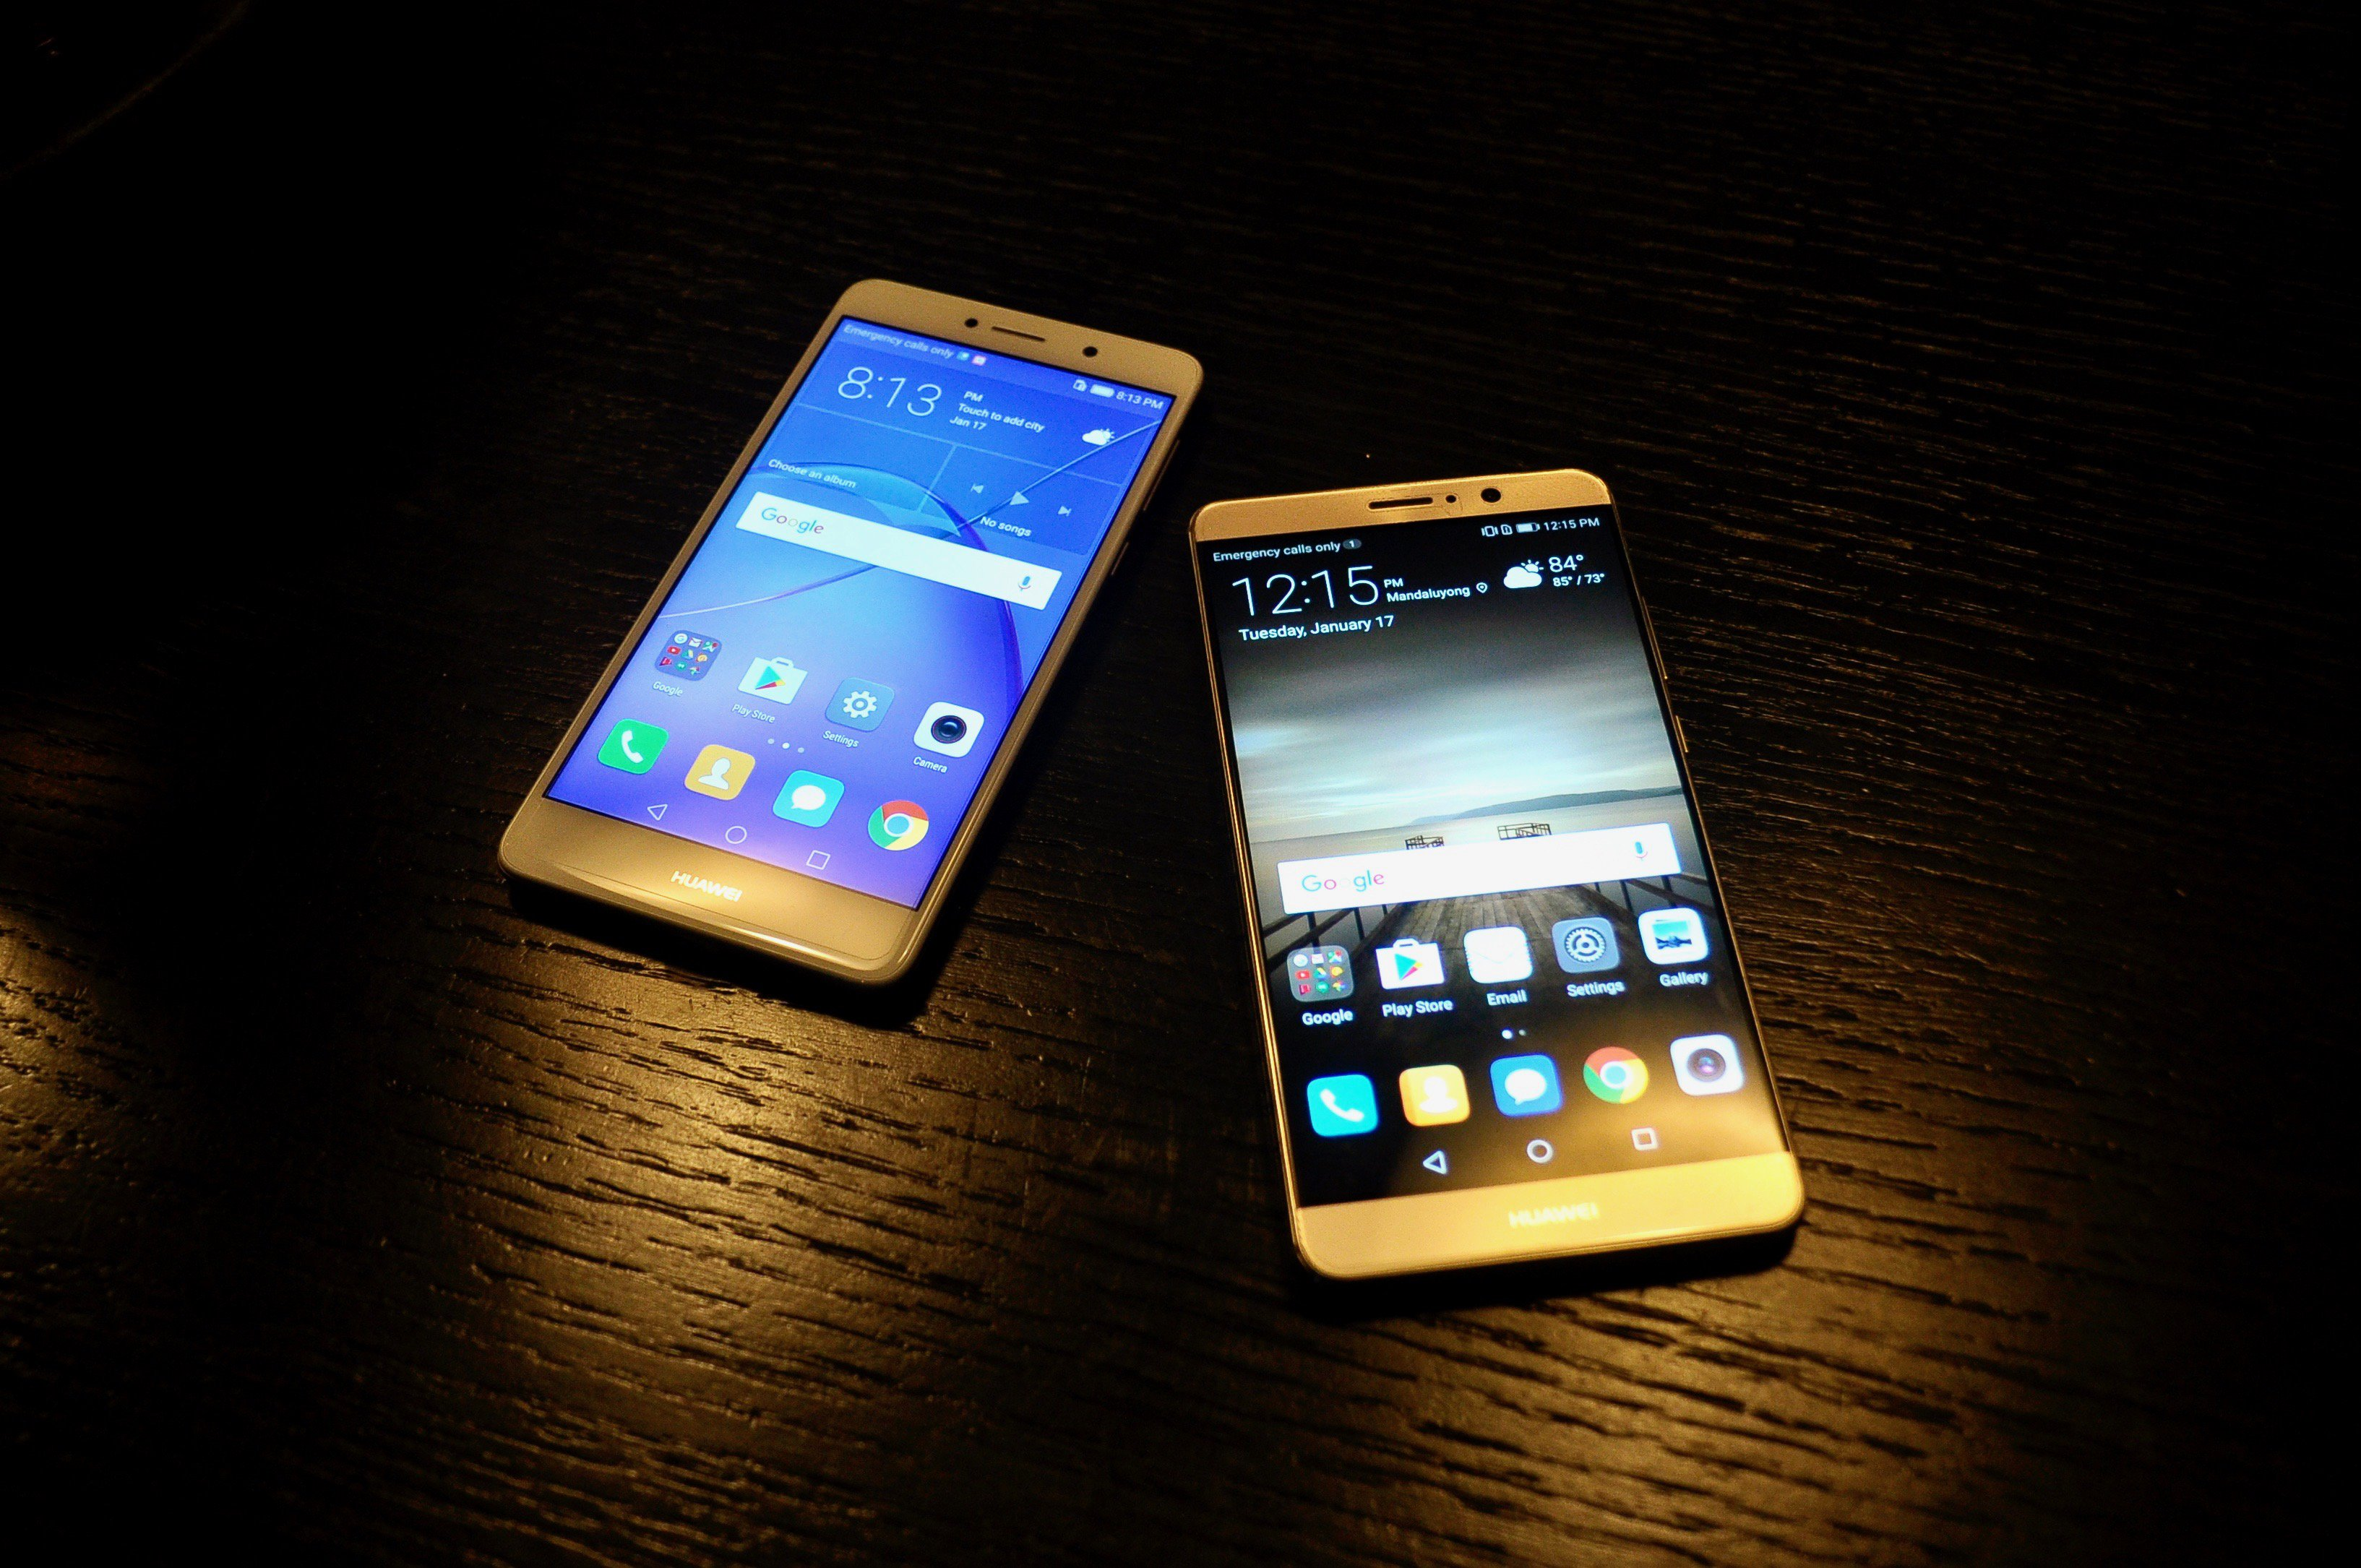 Huawei GR5 2017 and Mate 9 Flagship smartphone Carriers Face Tough Battle AS Vendors Cuddle Up To Amazon